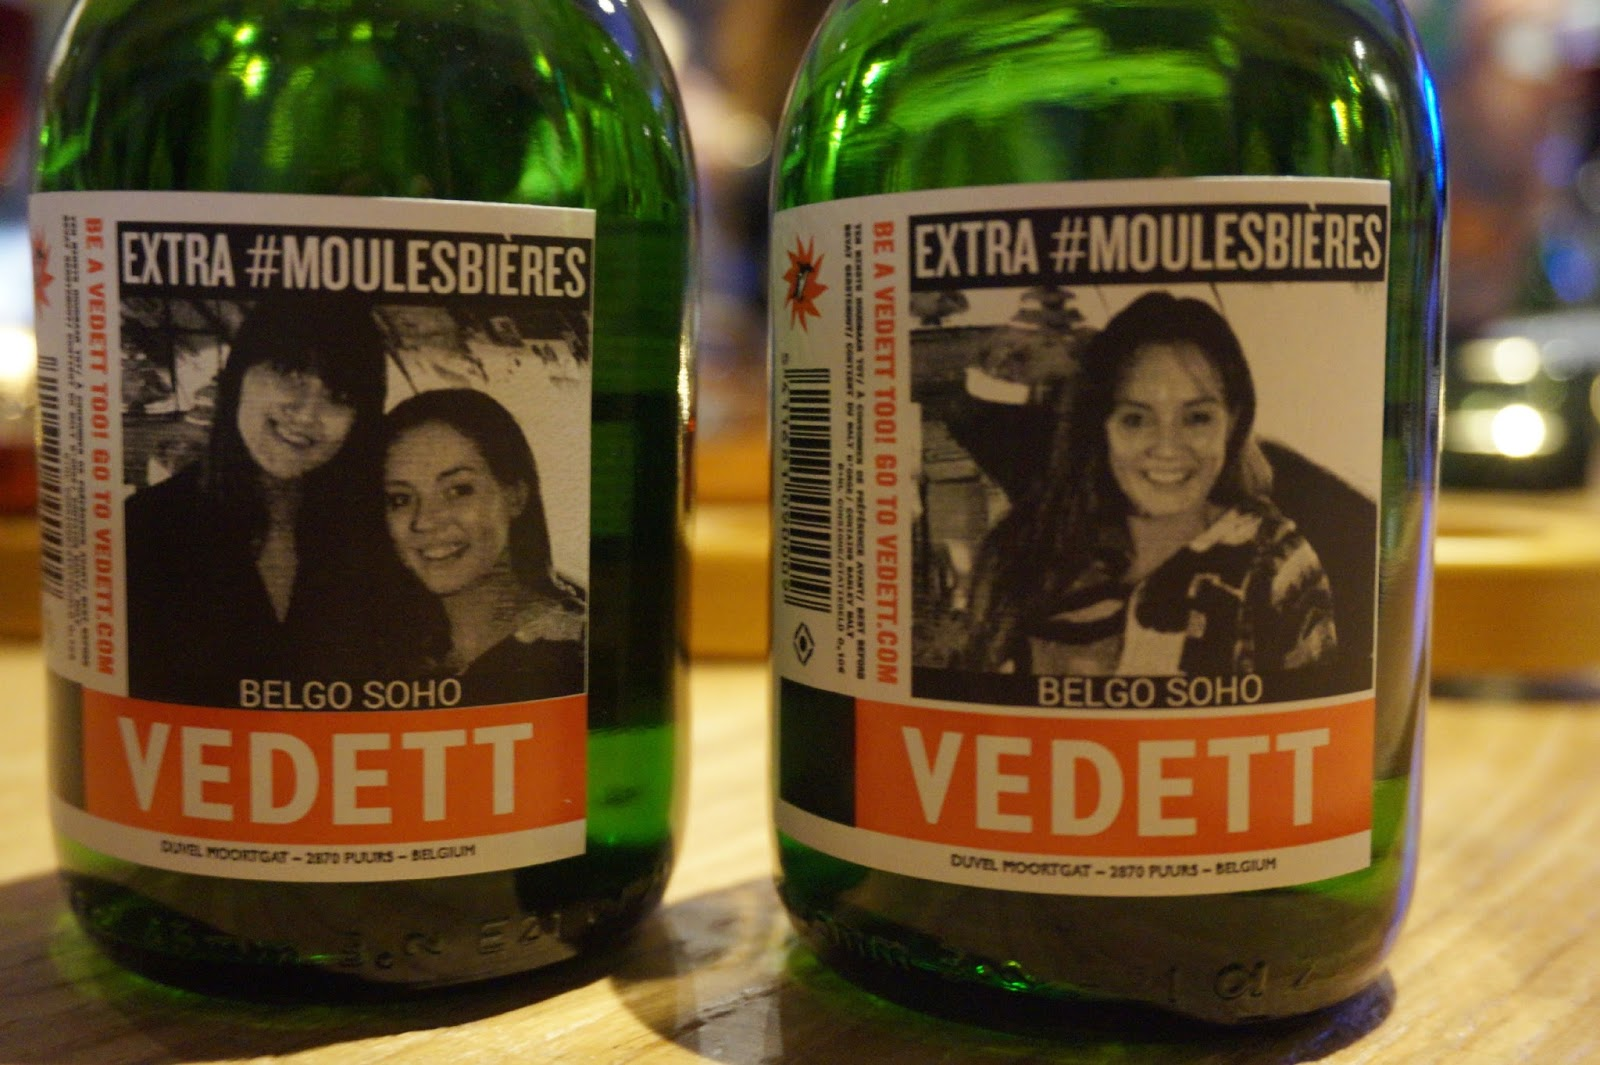 bottles of vedett beer